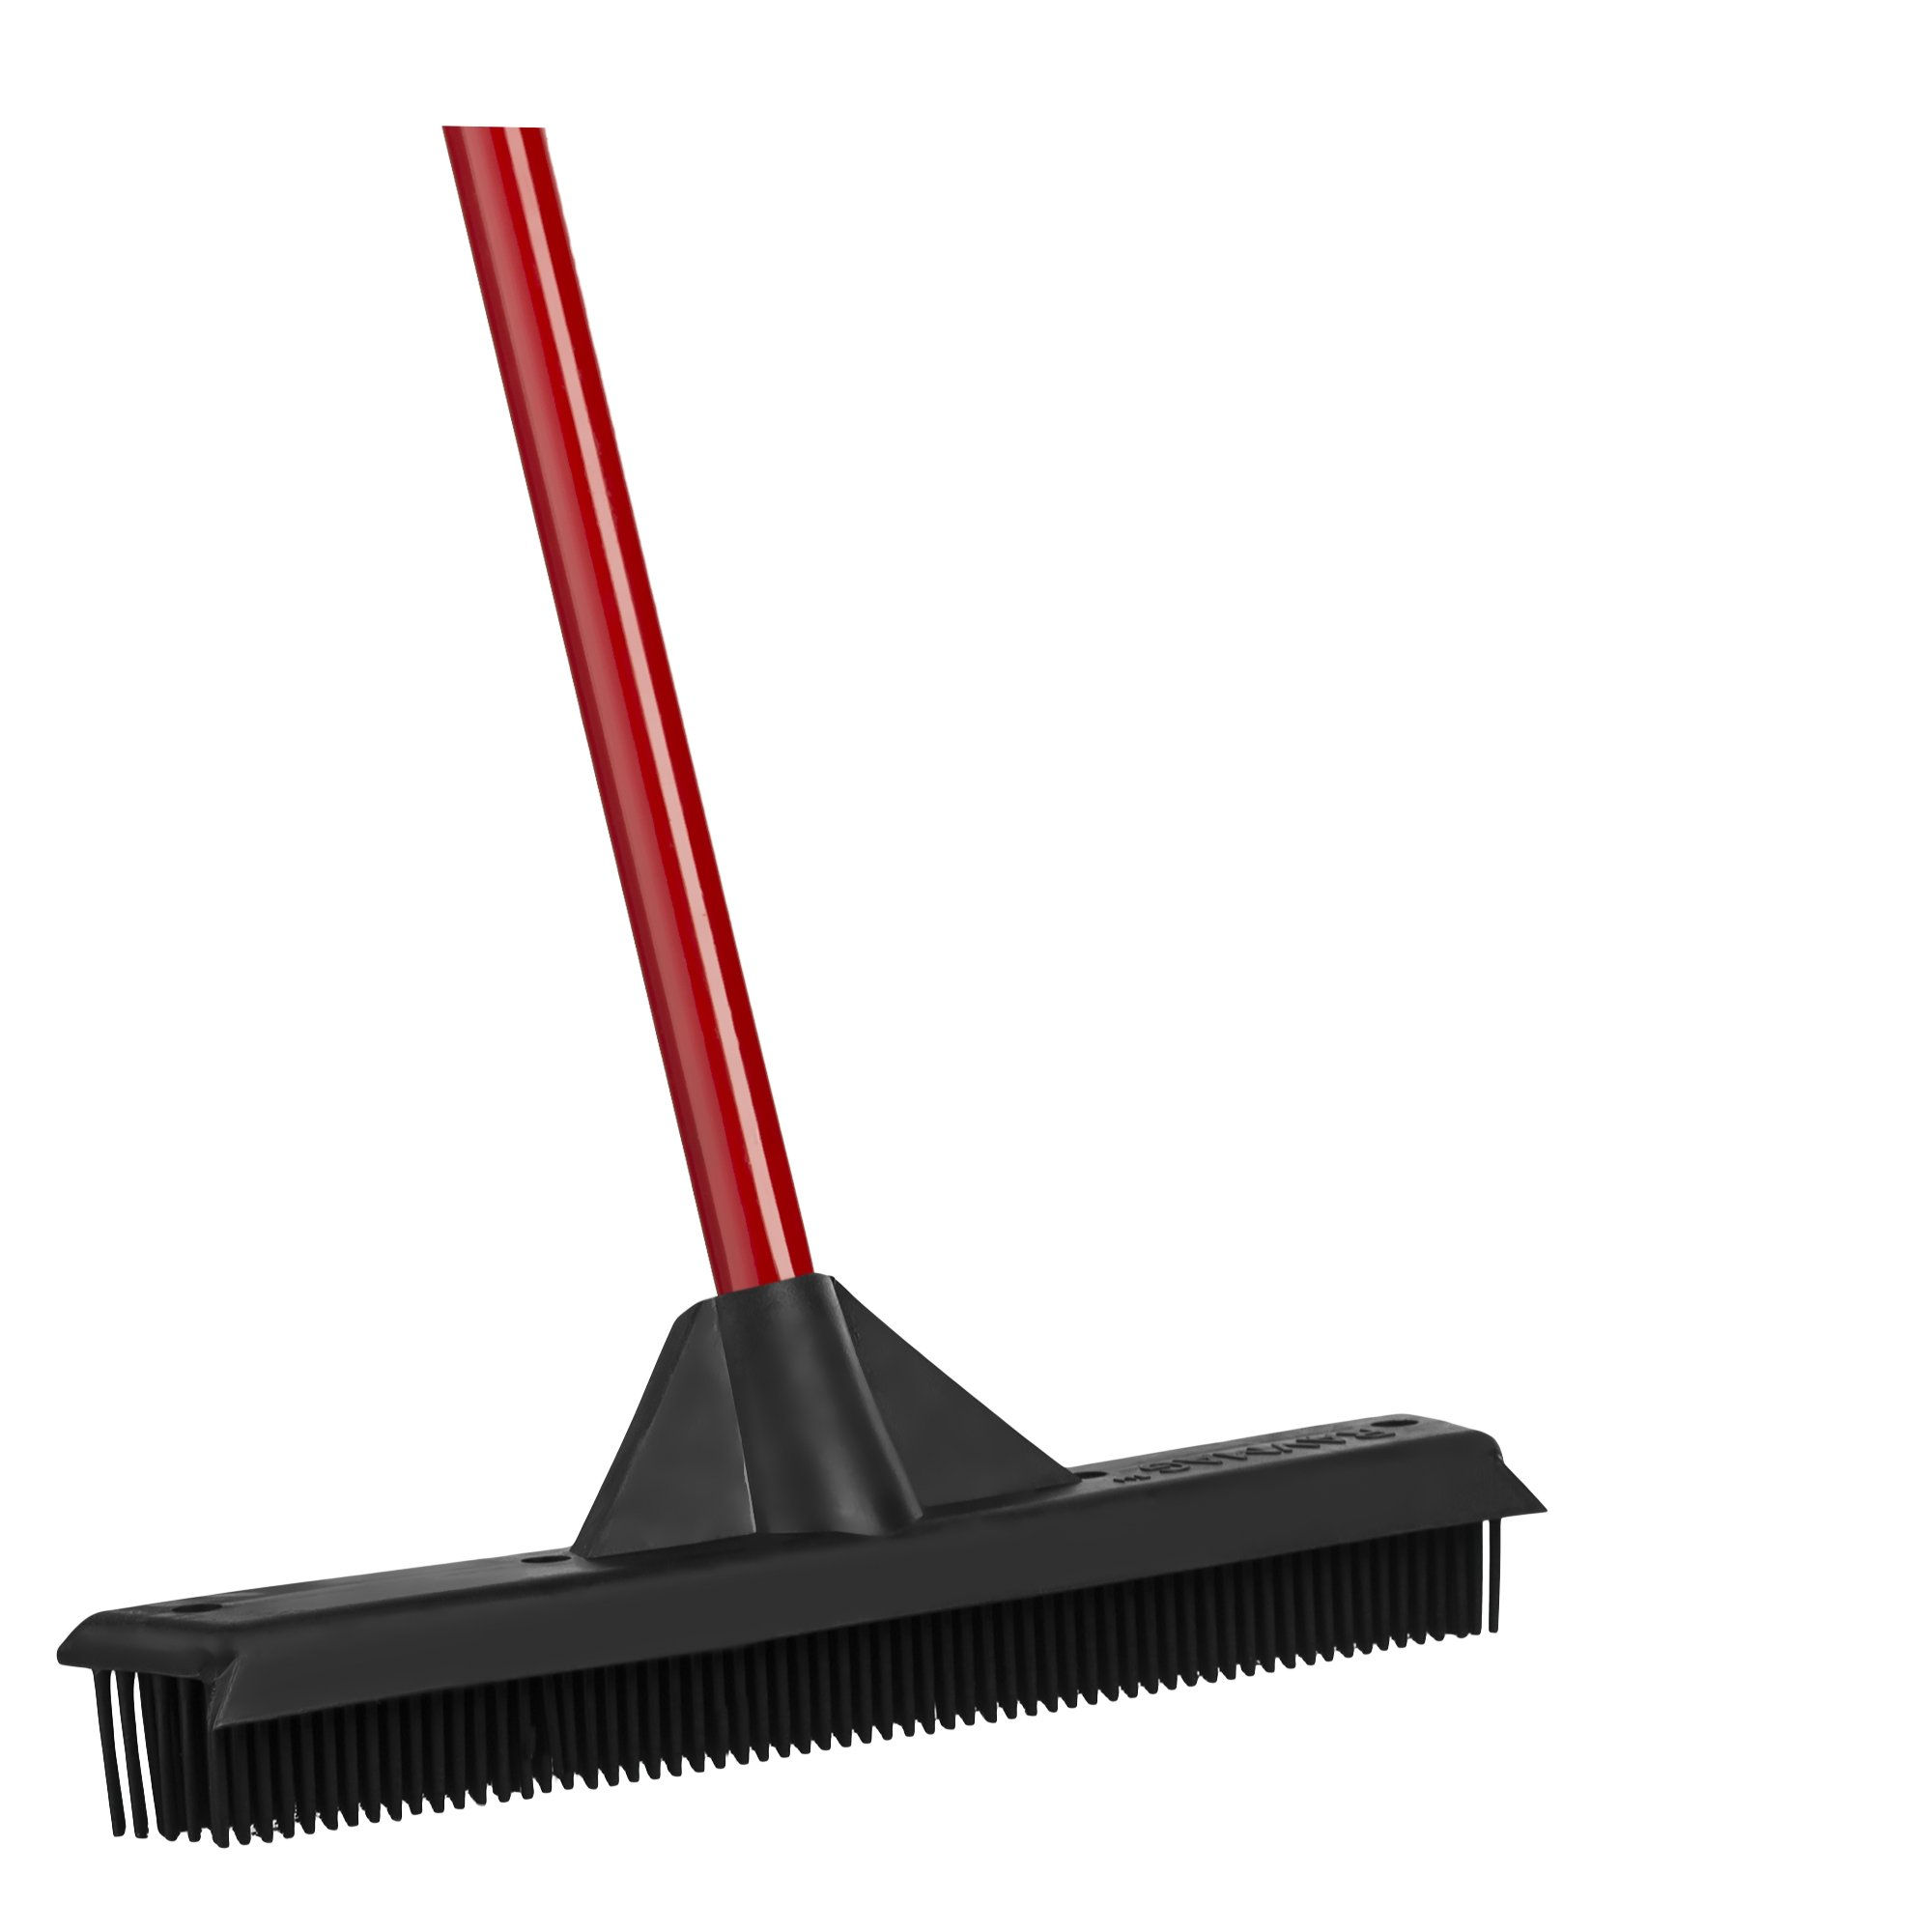 RAVMAG Rubber Broom & Squeegee – Design, Natural Rubber Bristles. For Pet & Human Hair – For Indoor & Outdoor Use. Cleans Carpets, Hardwood Floors, Decks & windows. Water Resistant.